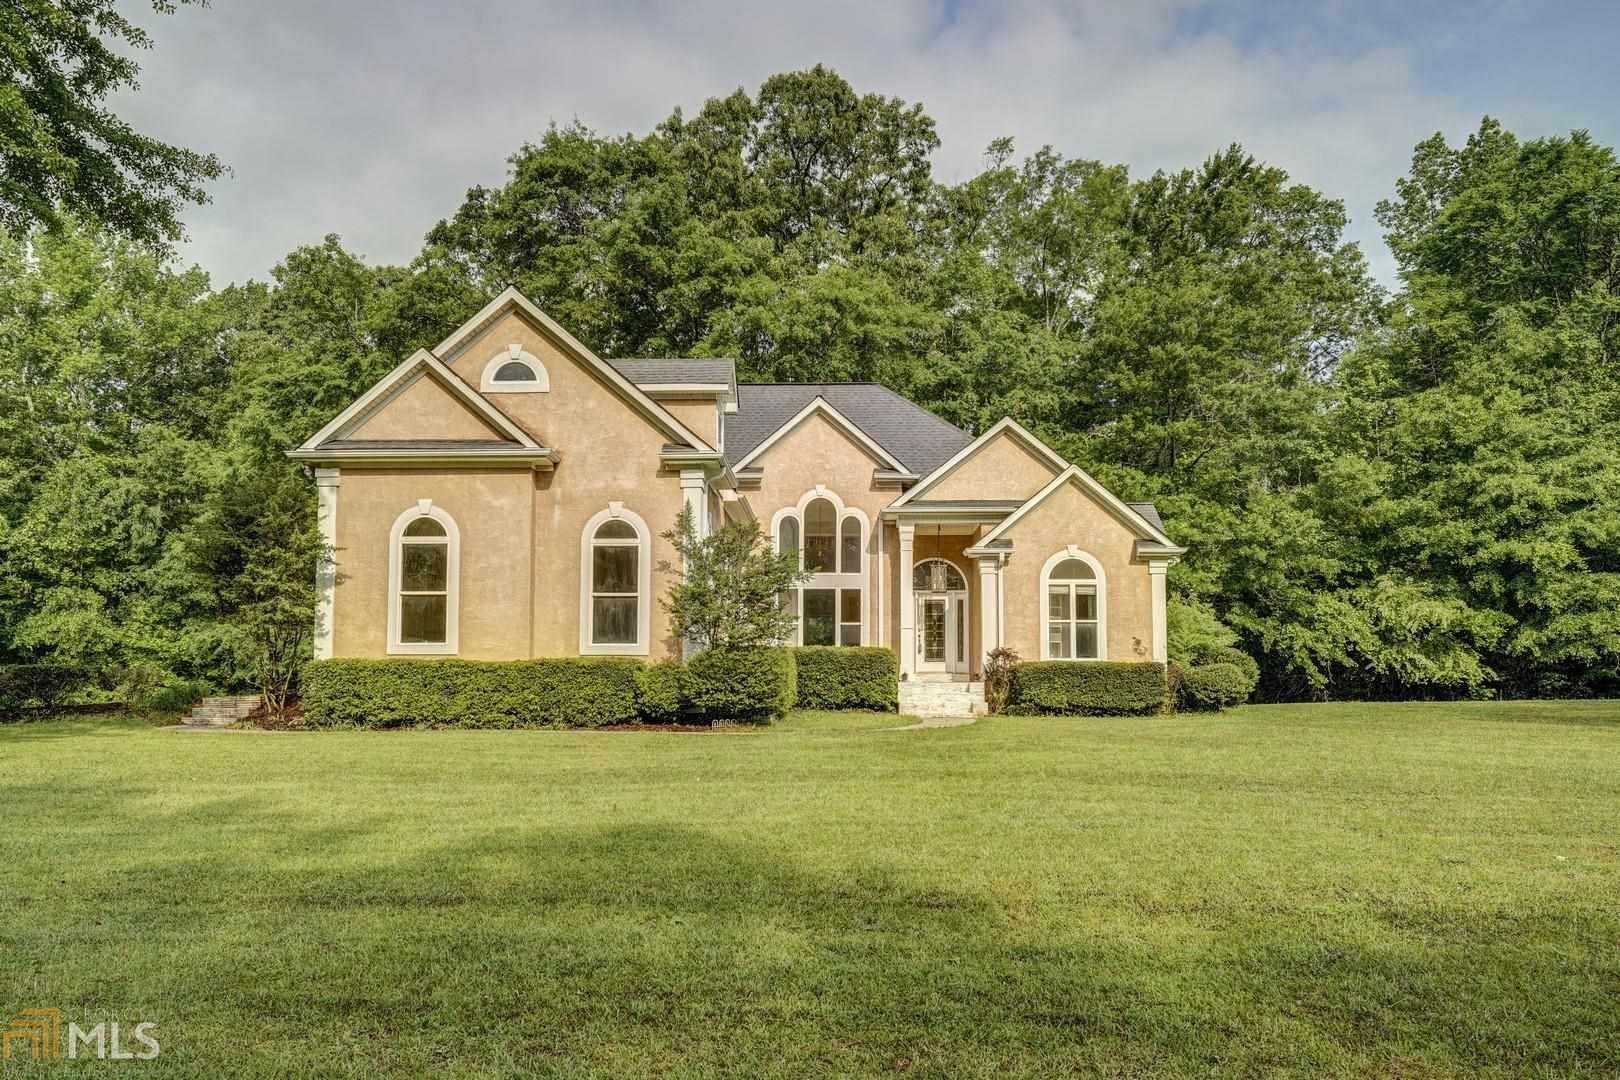 304 Harbour Shores Dr, Jackson, GA 30233 - #: 8975946